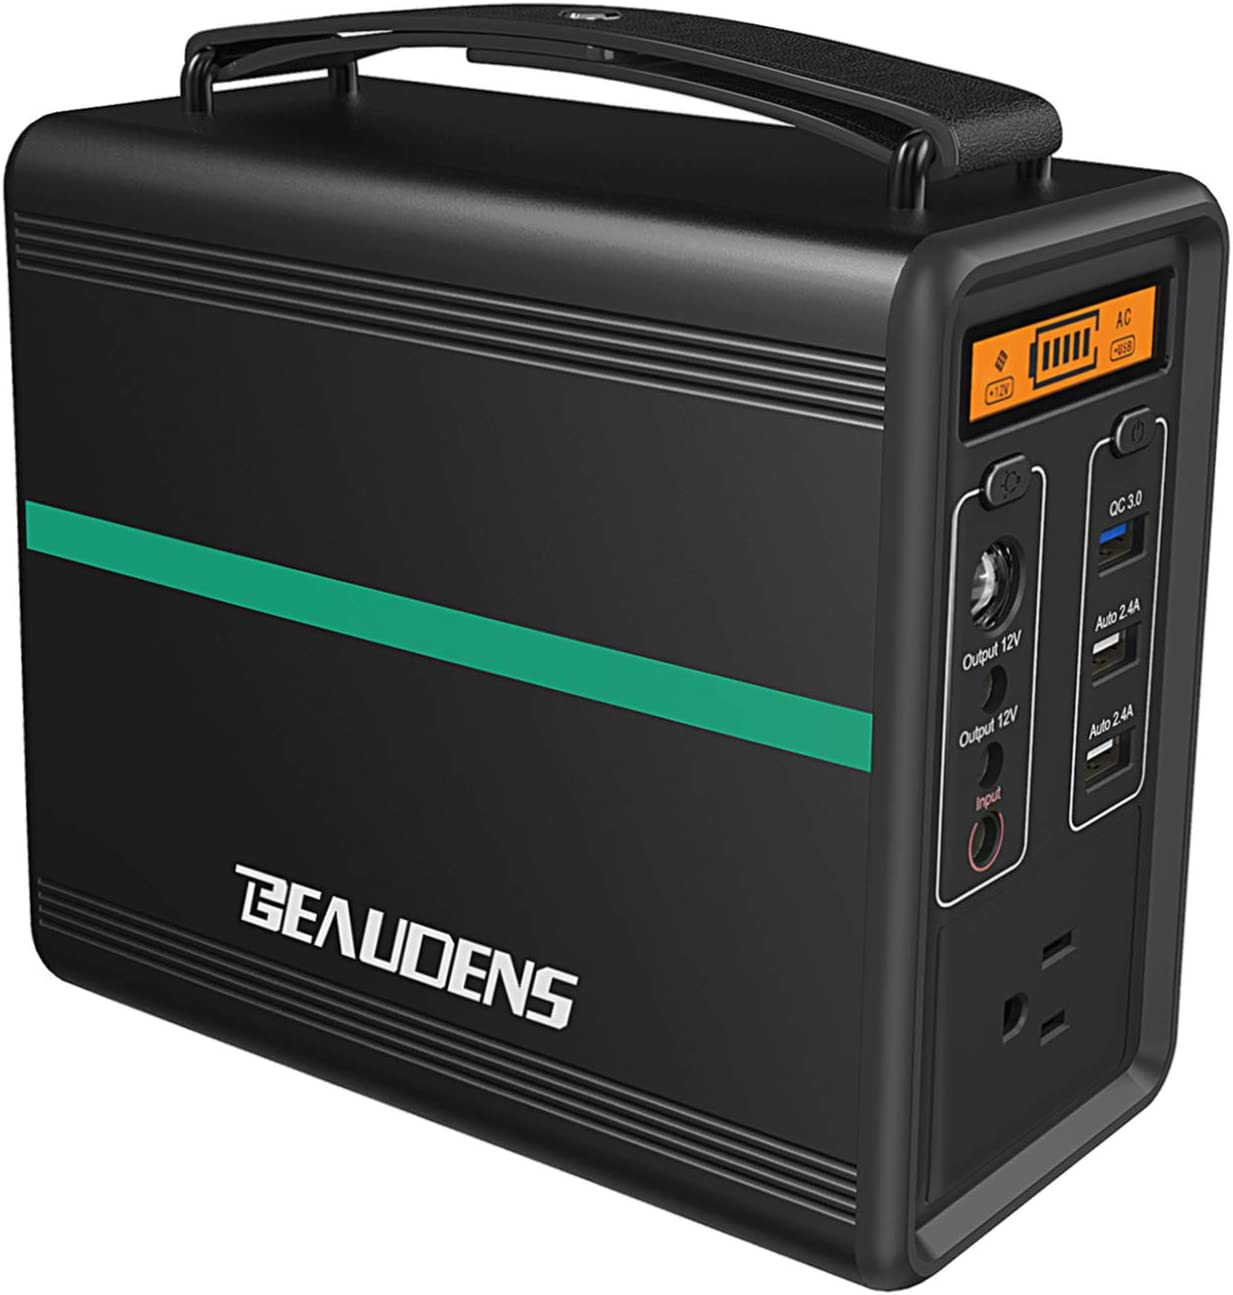 BEAUDENS Portable Power Station, Lithium Iron Phosphate Battery, 2000 Cycles, 10 Years Life, 166Wh 110V 150W AC Outlet, Solar Generator for Outdoors Camping Travel Fishing Emergency Backup